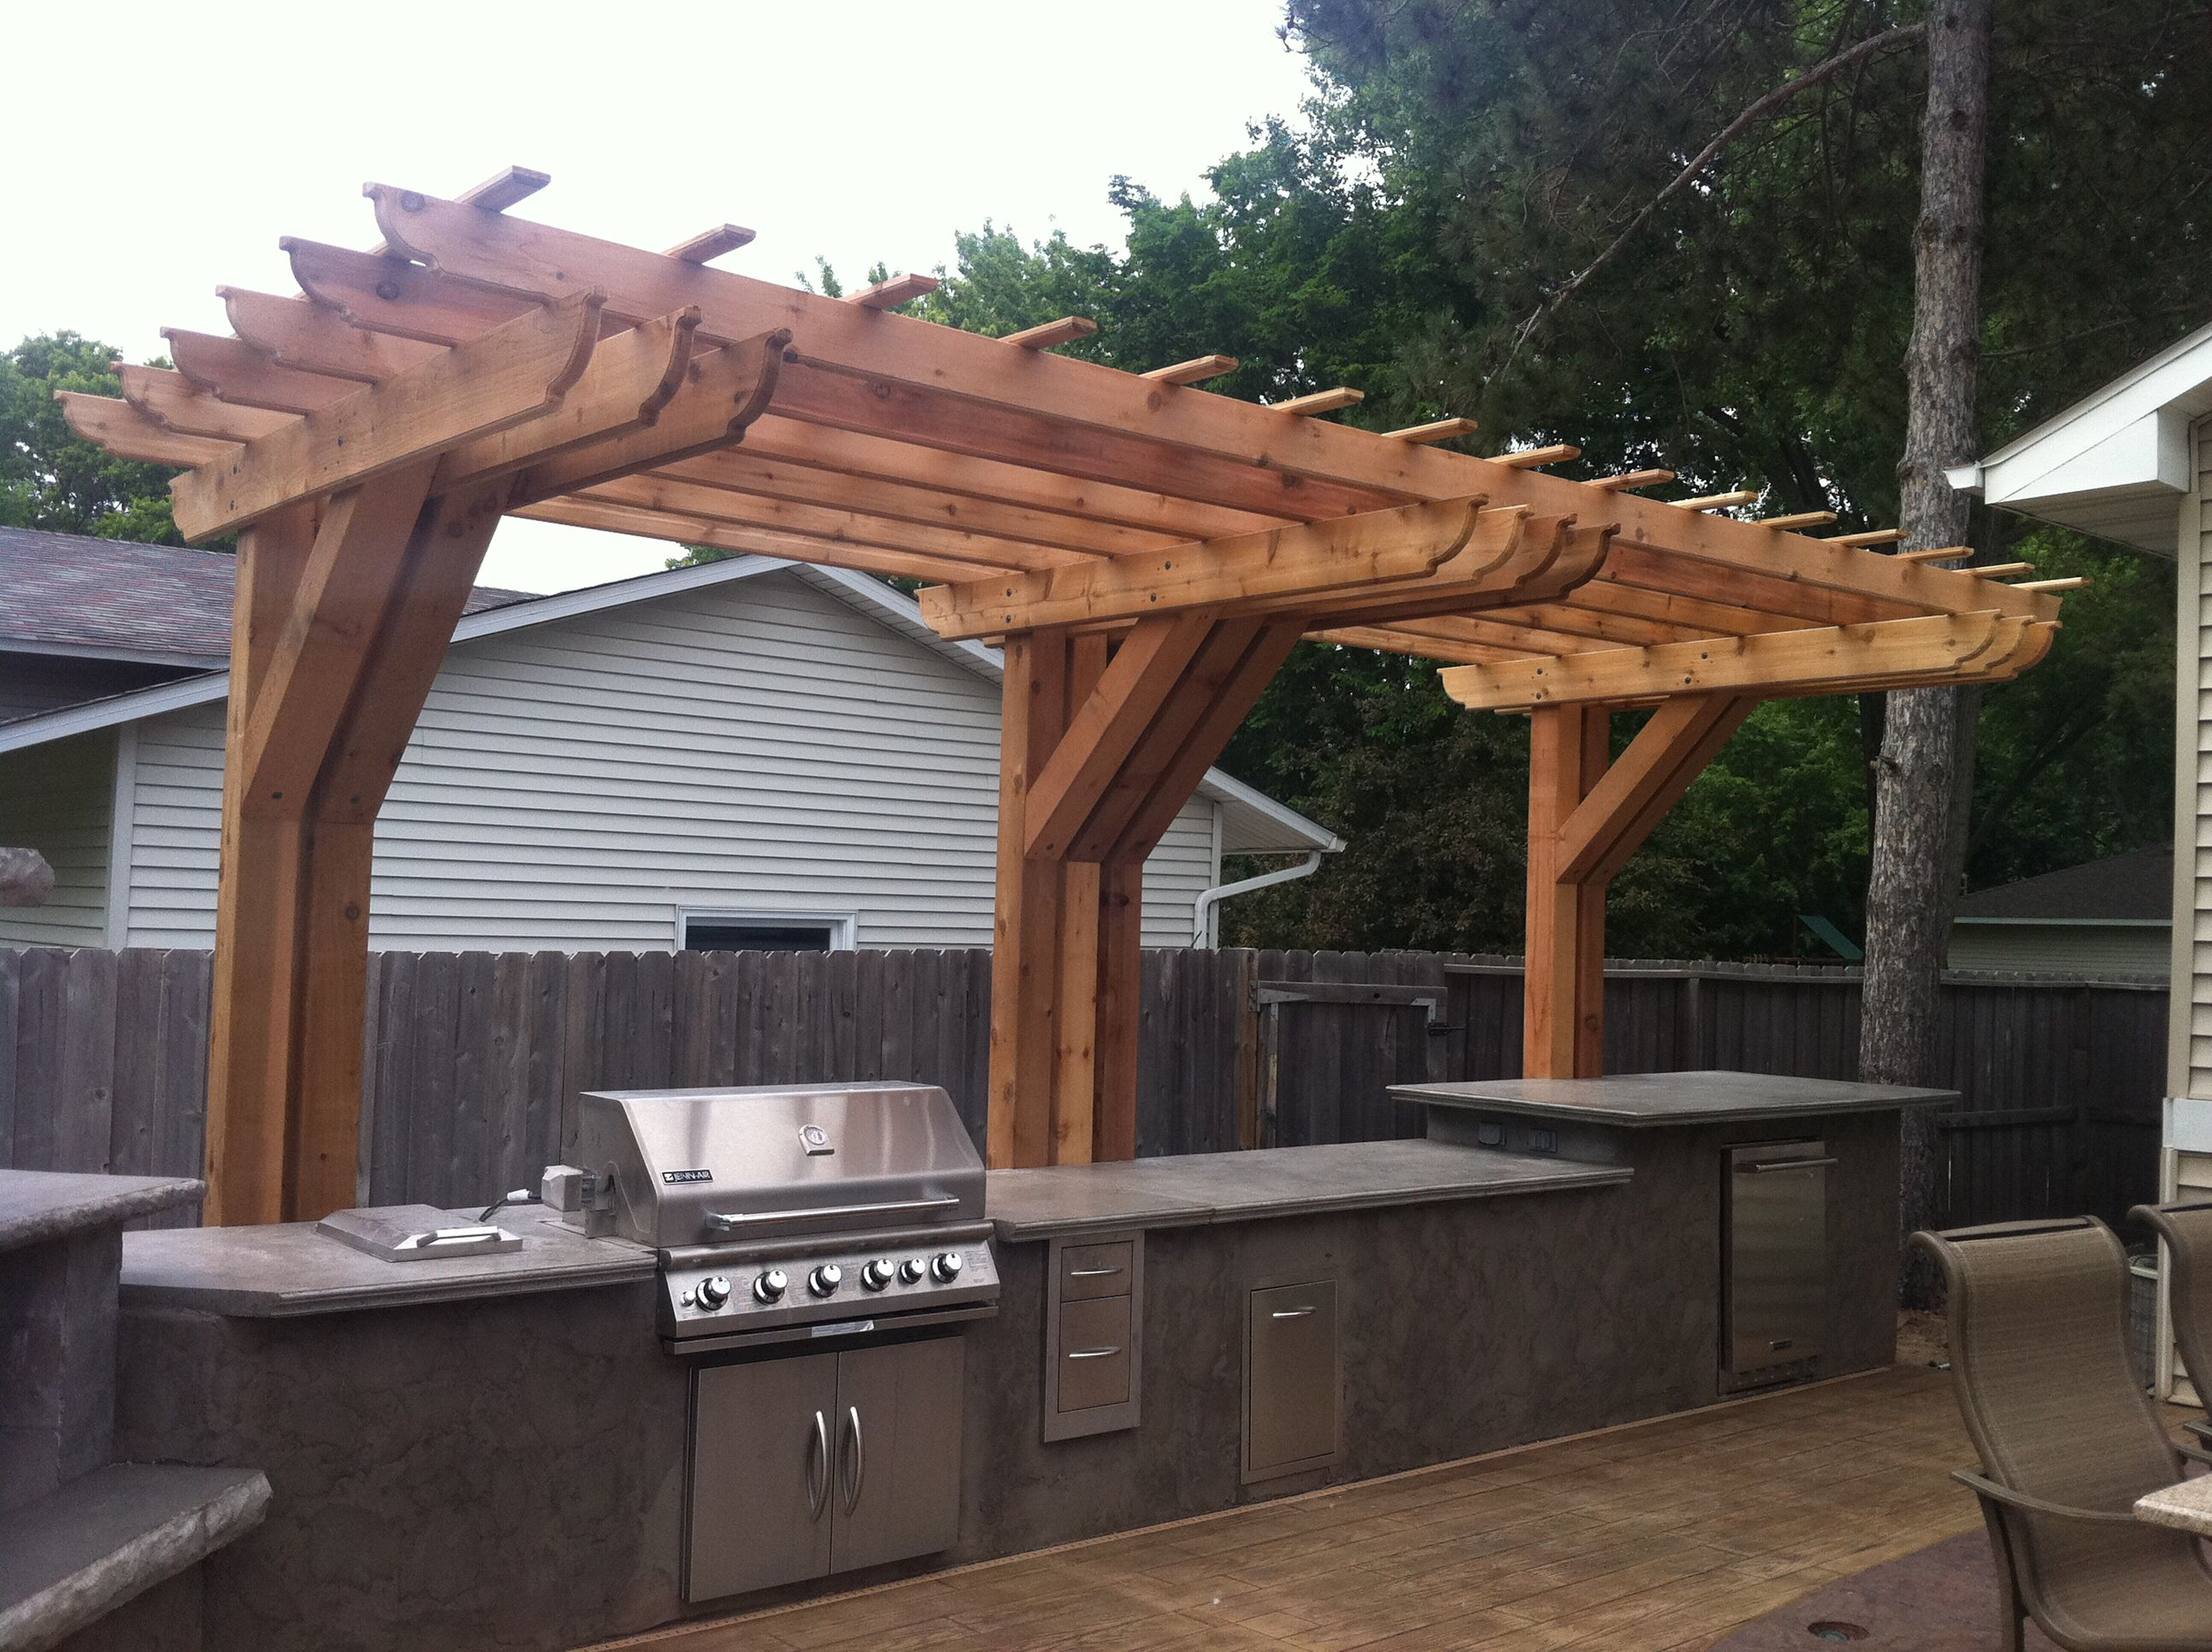 Chimeneas Exteriores Outdoor Kitchen With Cantilever Pergola Pergolas Malla